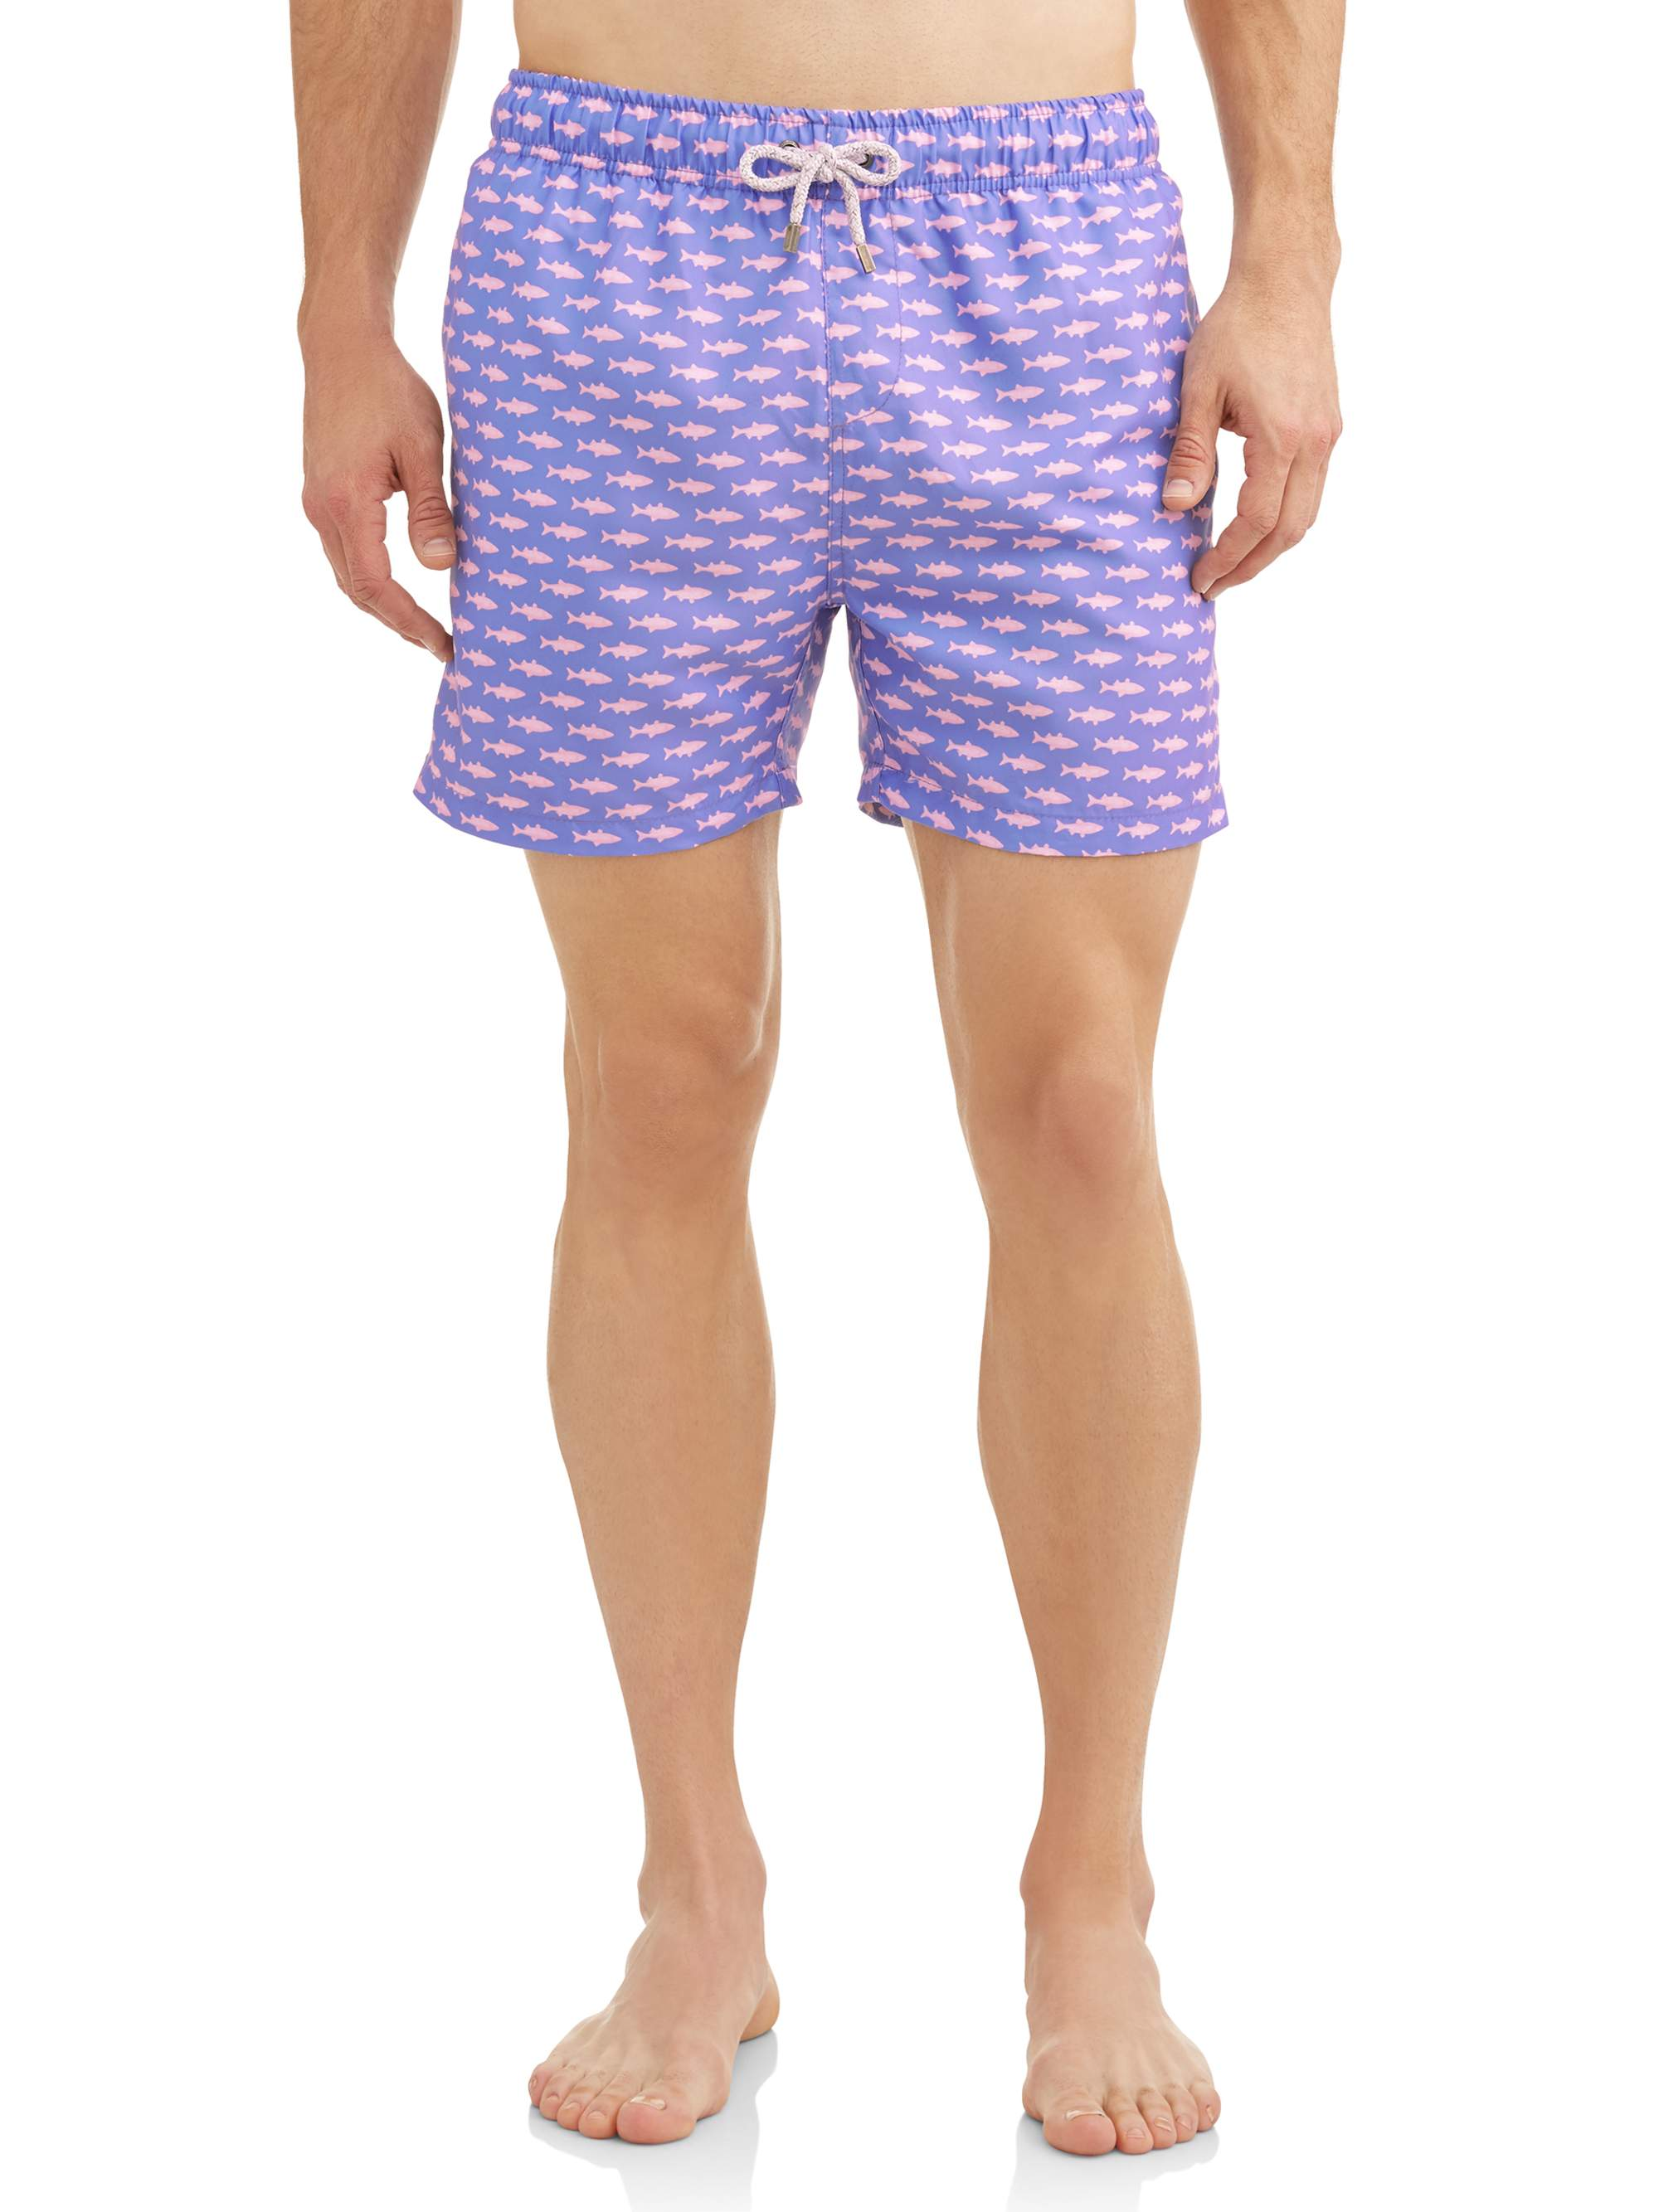 e958a29923590 Endless Summer - Endless Summer Men's Printed Volley 5.5 Inch Swim Shorts.  Up to size 2XL - Walmart.com